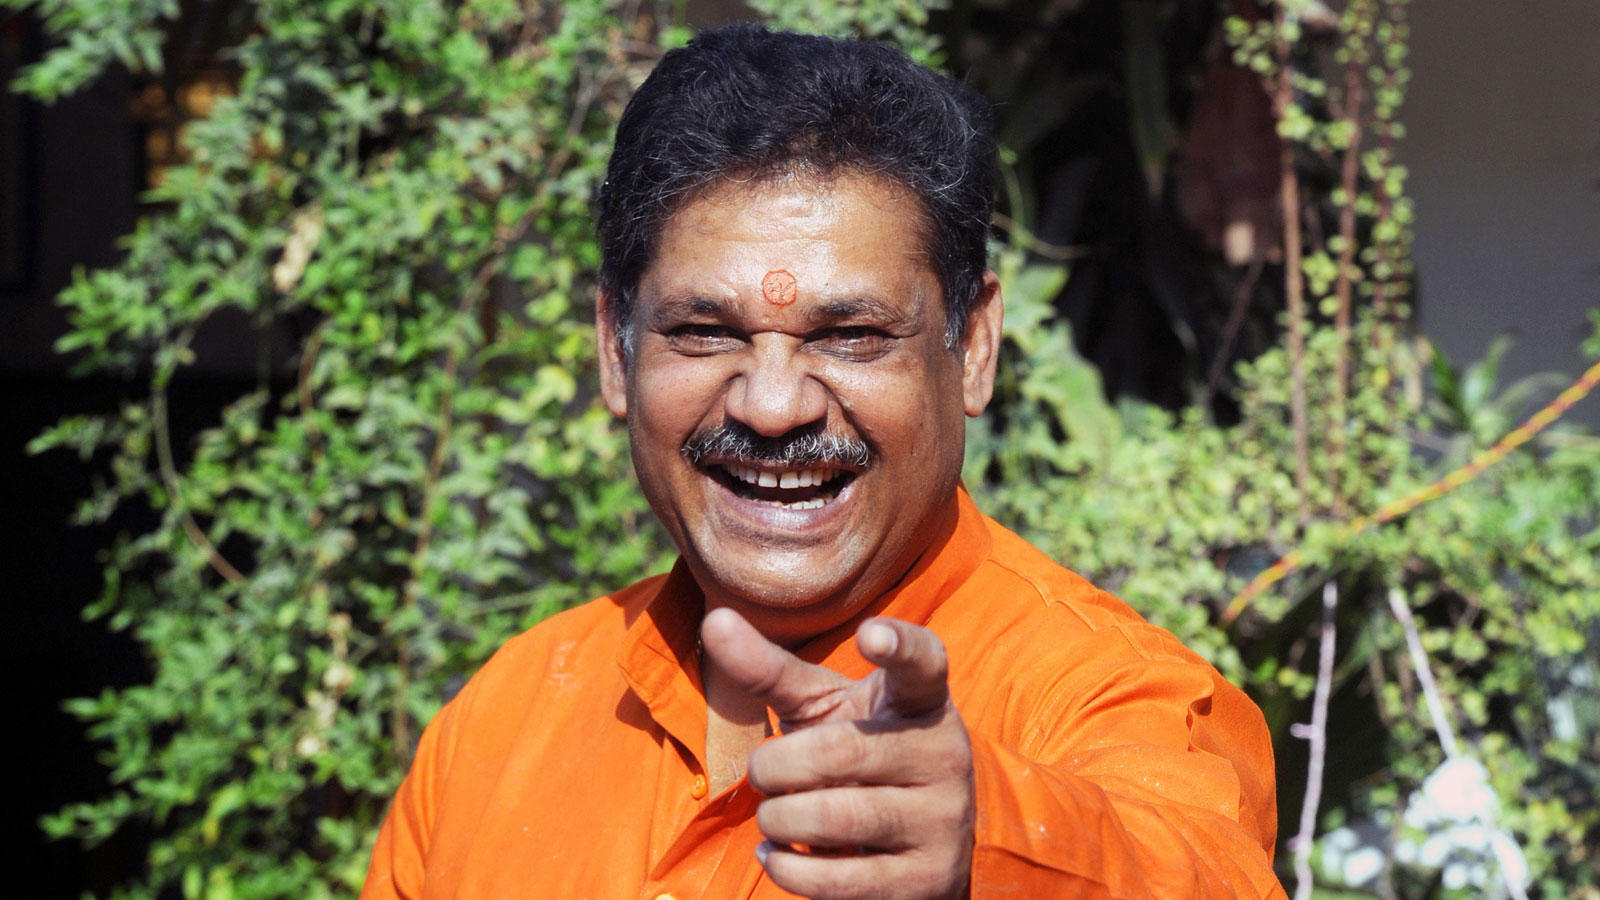 Kirti Azad, part of the World Cup winning squad in 1983 is a three time BJP MP